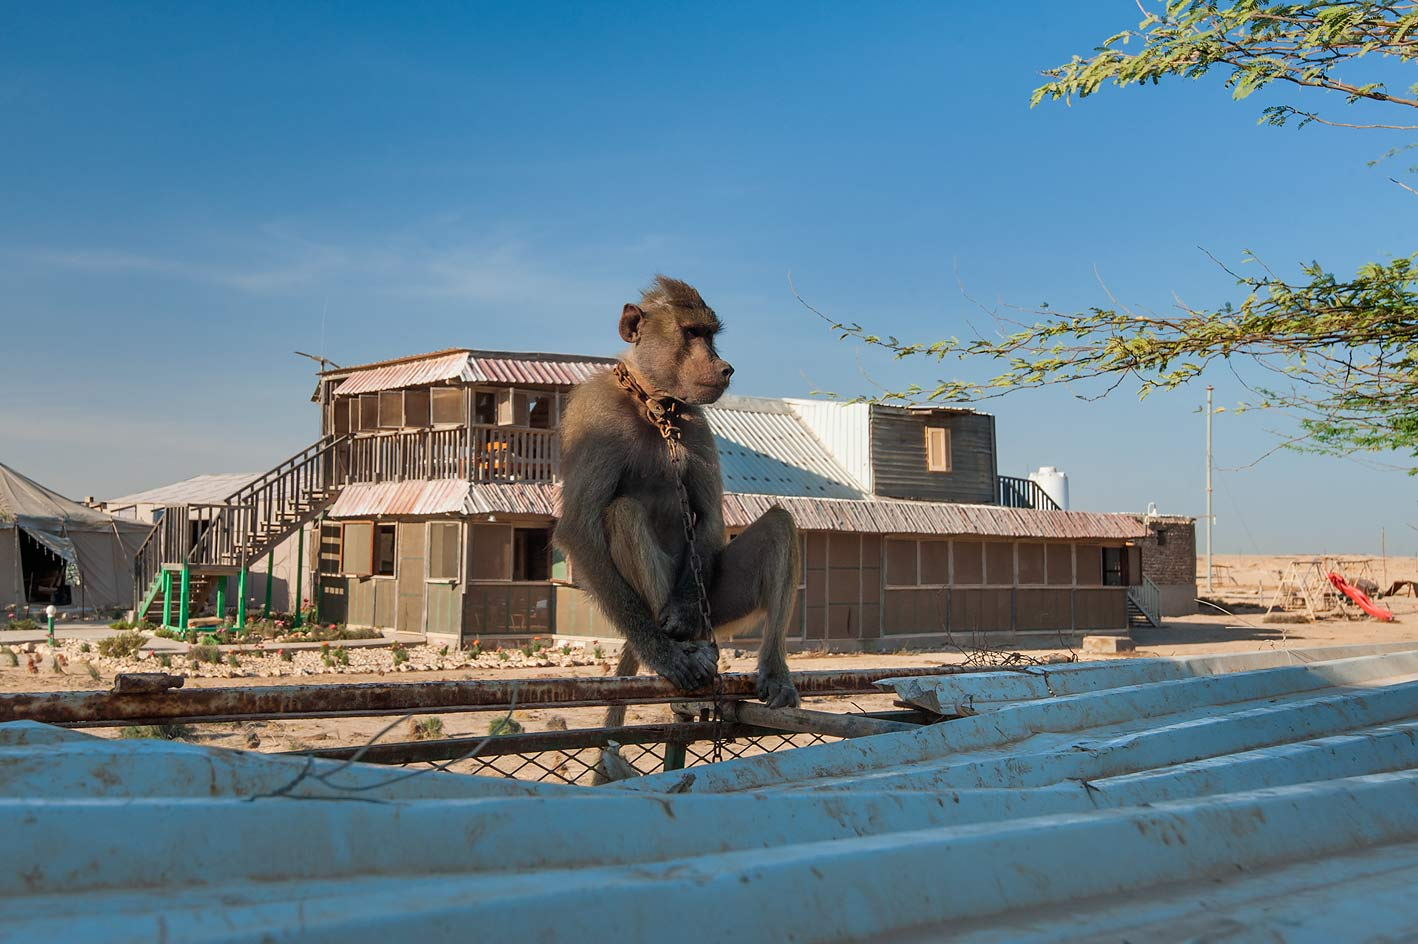 Black rhesus macaque monkey chained at the...Thugab Fort. North-west coast, Qatar